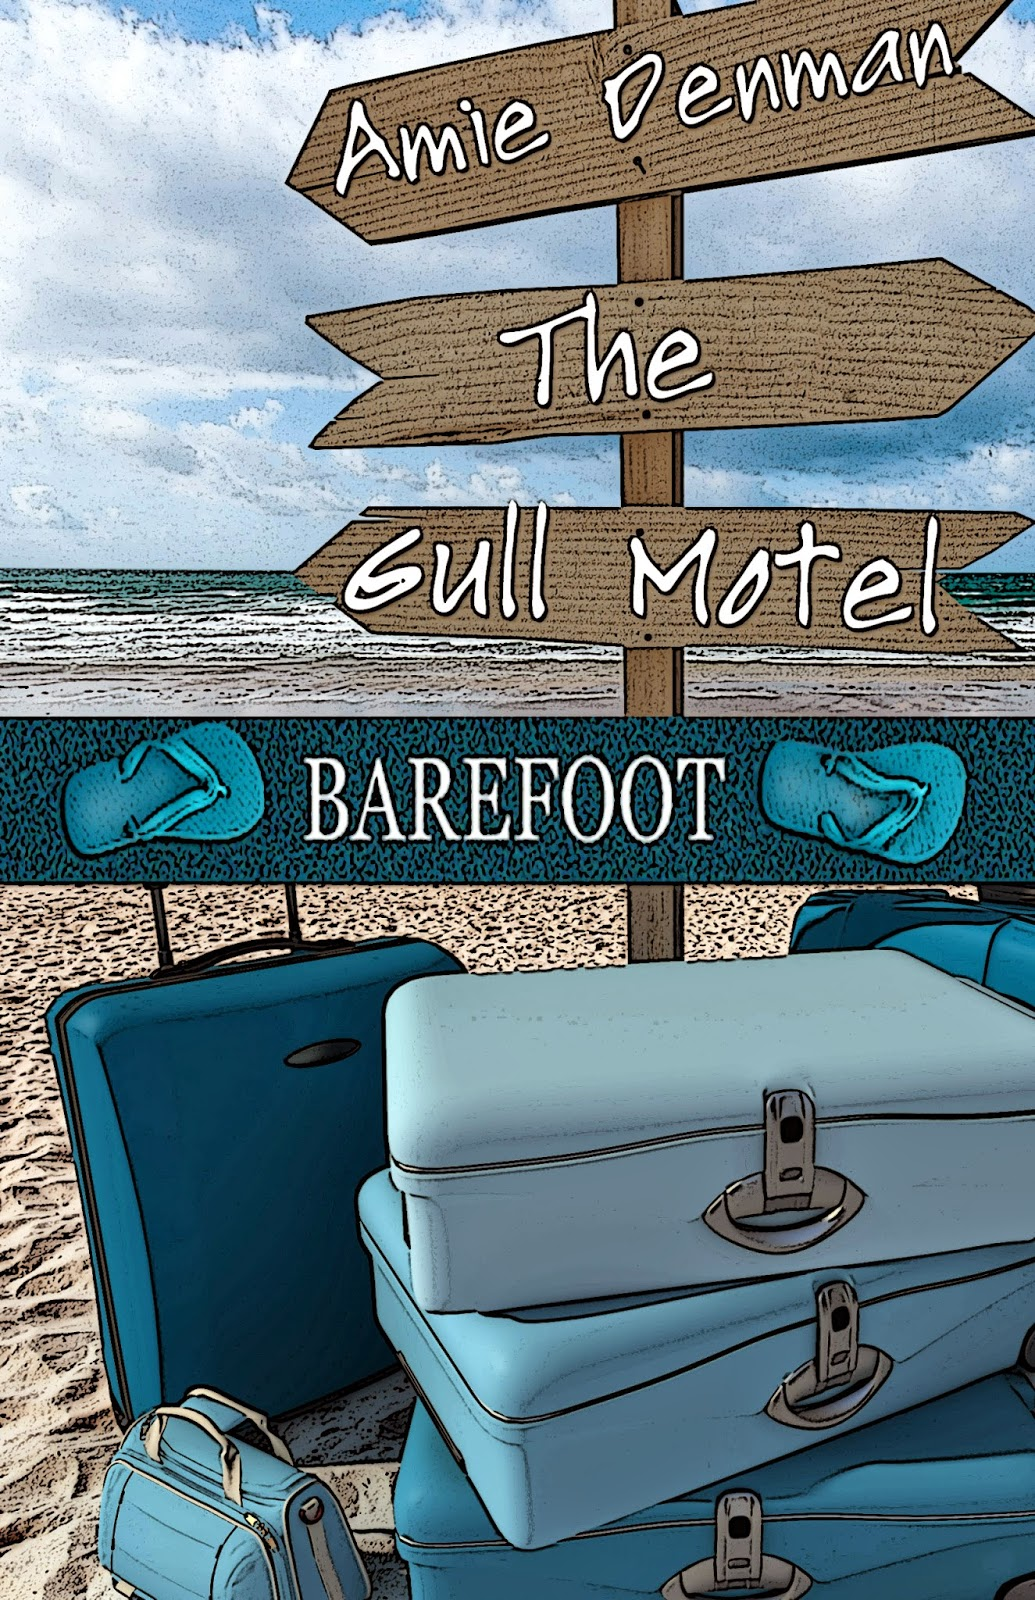 The Gull Motel by Amie Denman - Guest post @ My Book and My Coffee